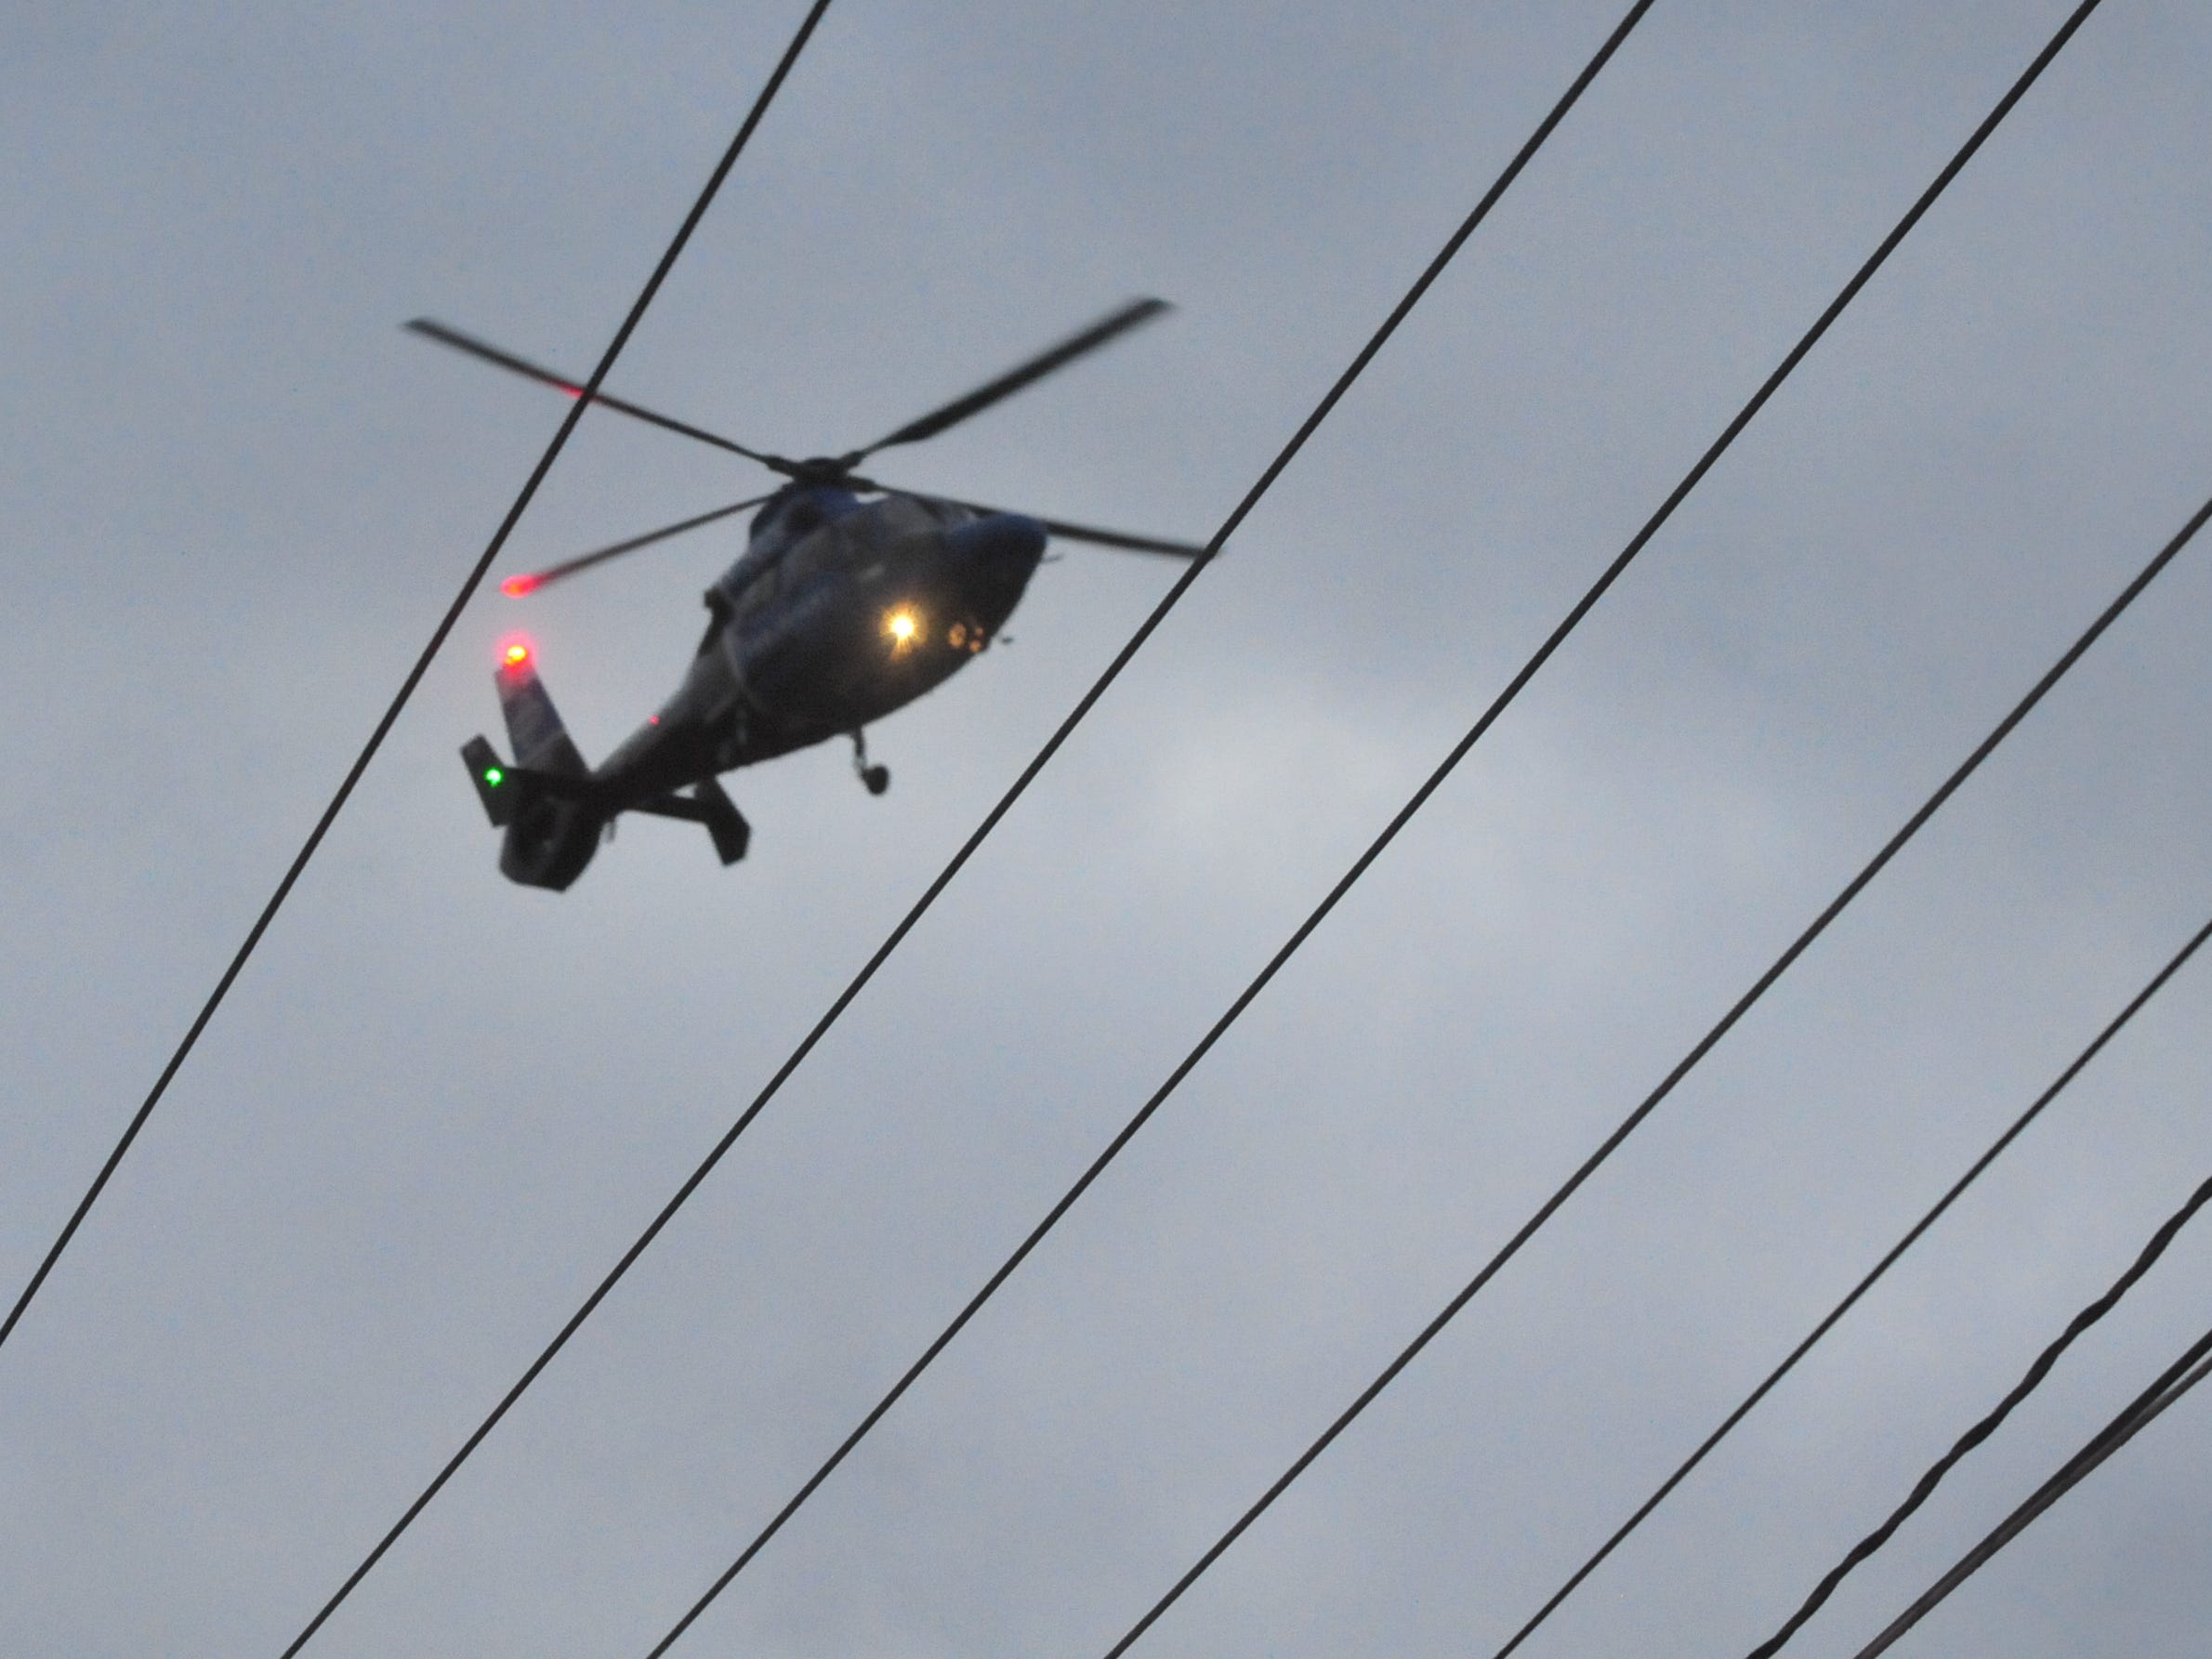 A Careflight medical helicopter descends for a landing Tuesday at the scene of a head-on collision on Salisbury Road.